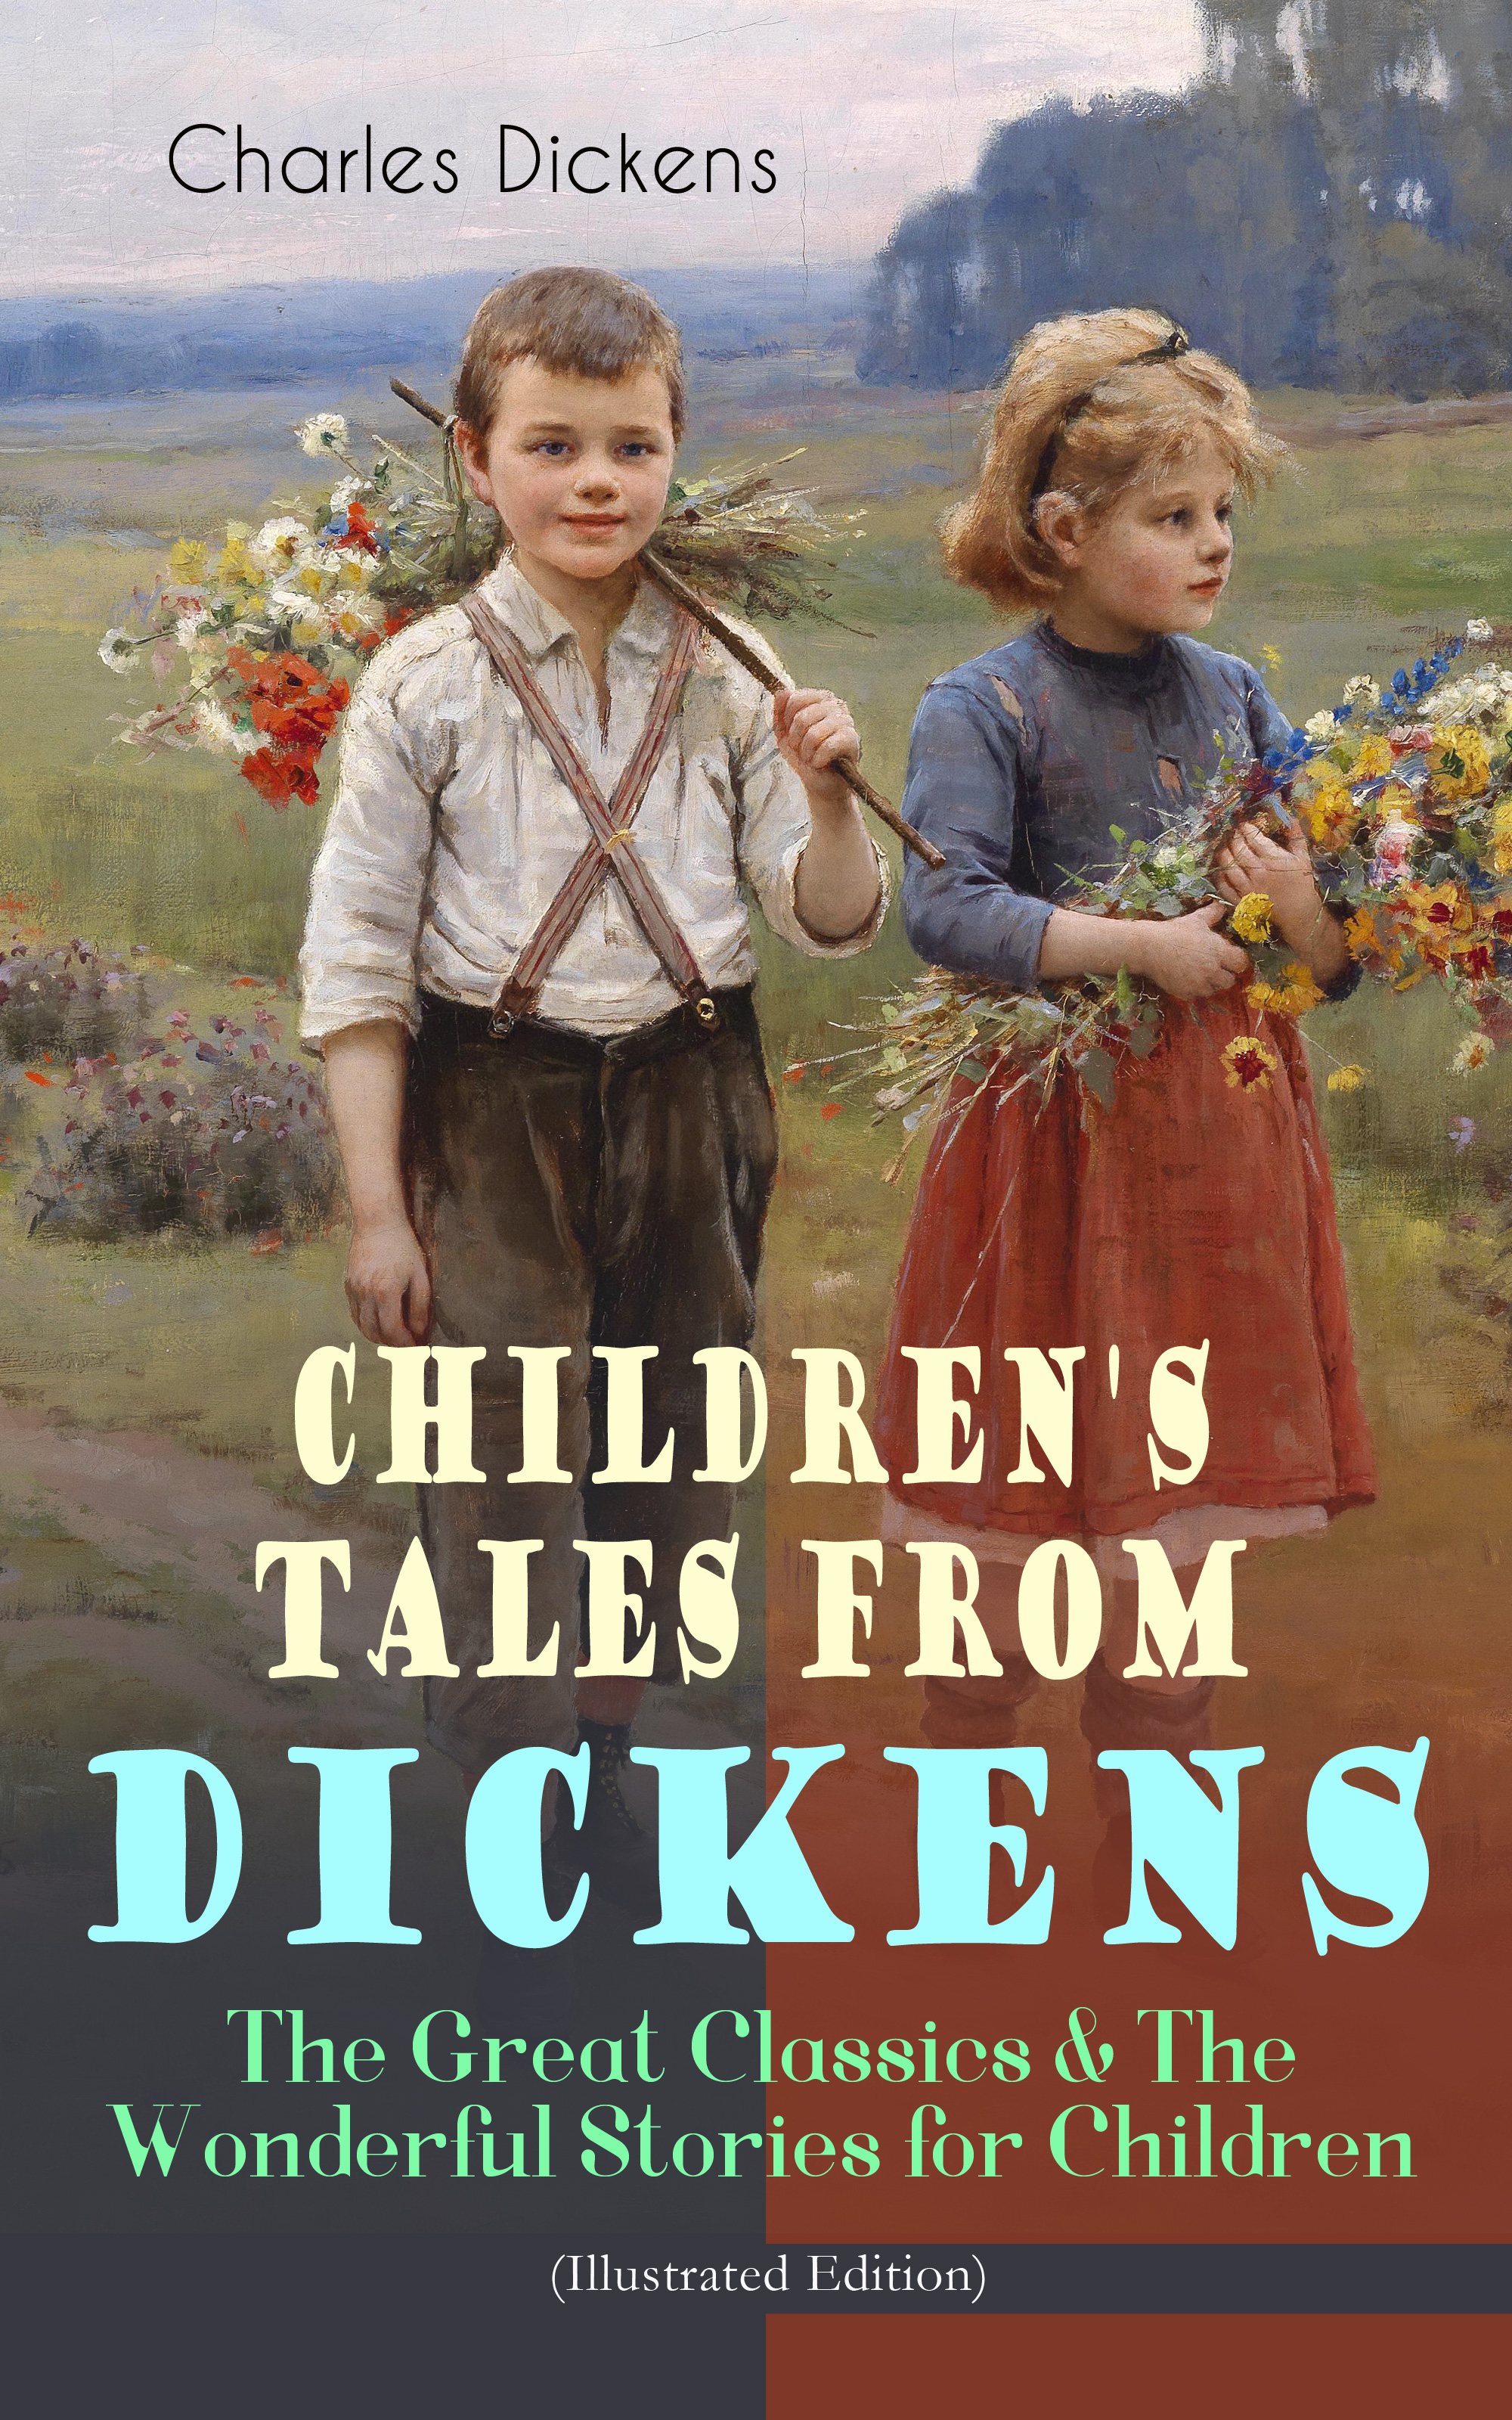 Charles Dickens Children's Tales from Dickens – The Great Classics & The Wonderful Stories for Children (Illustrated Edition)